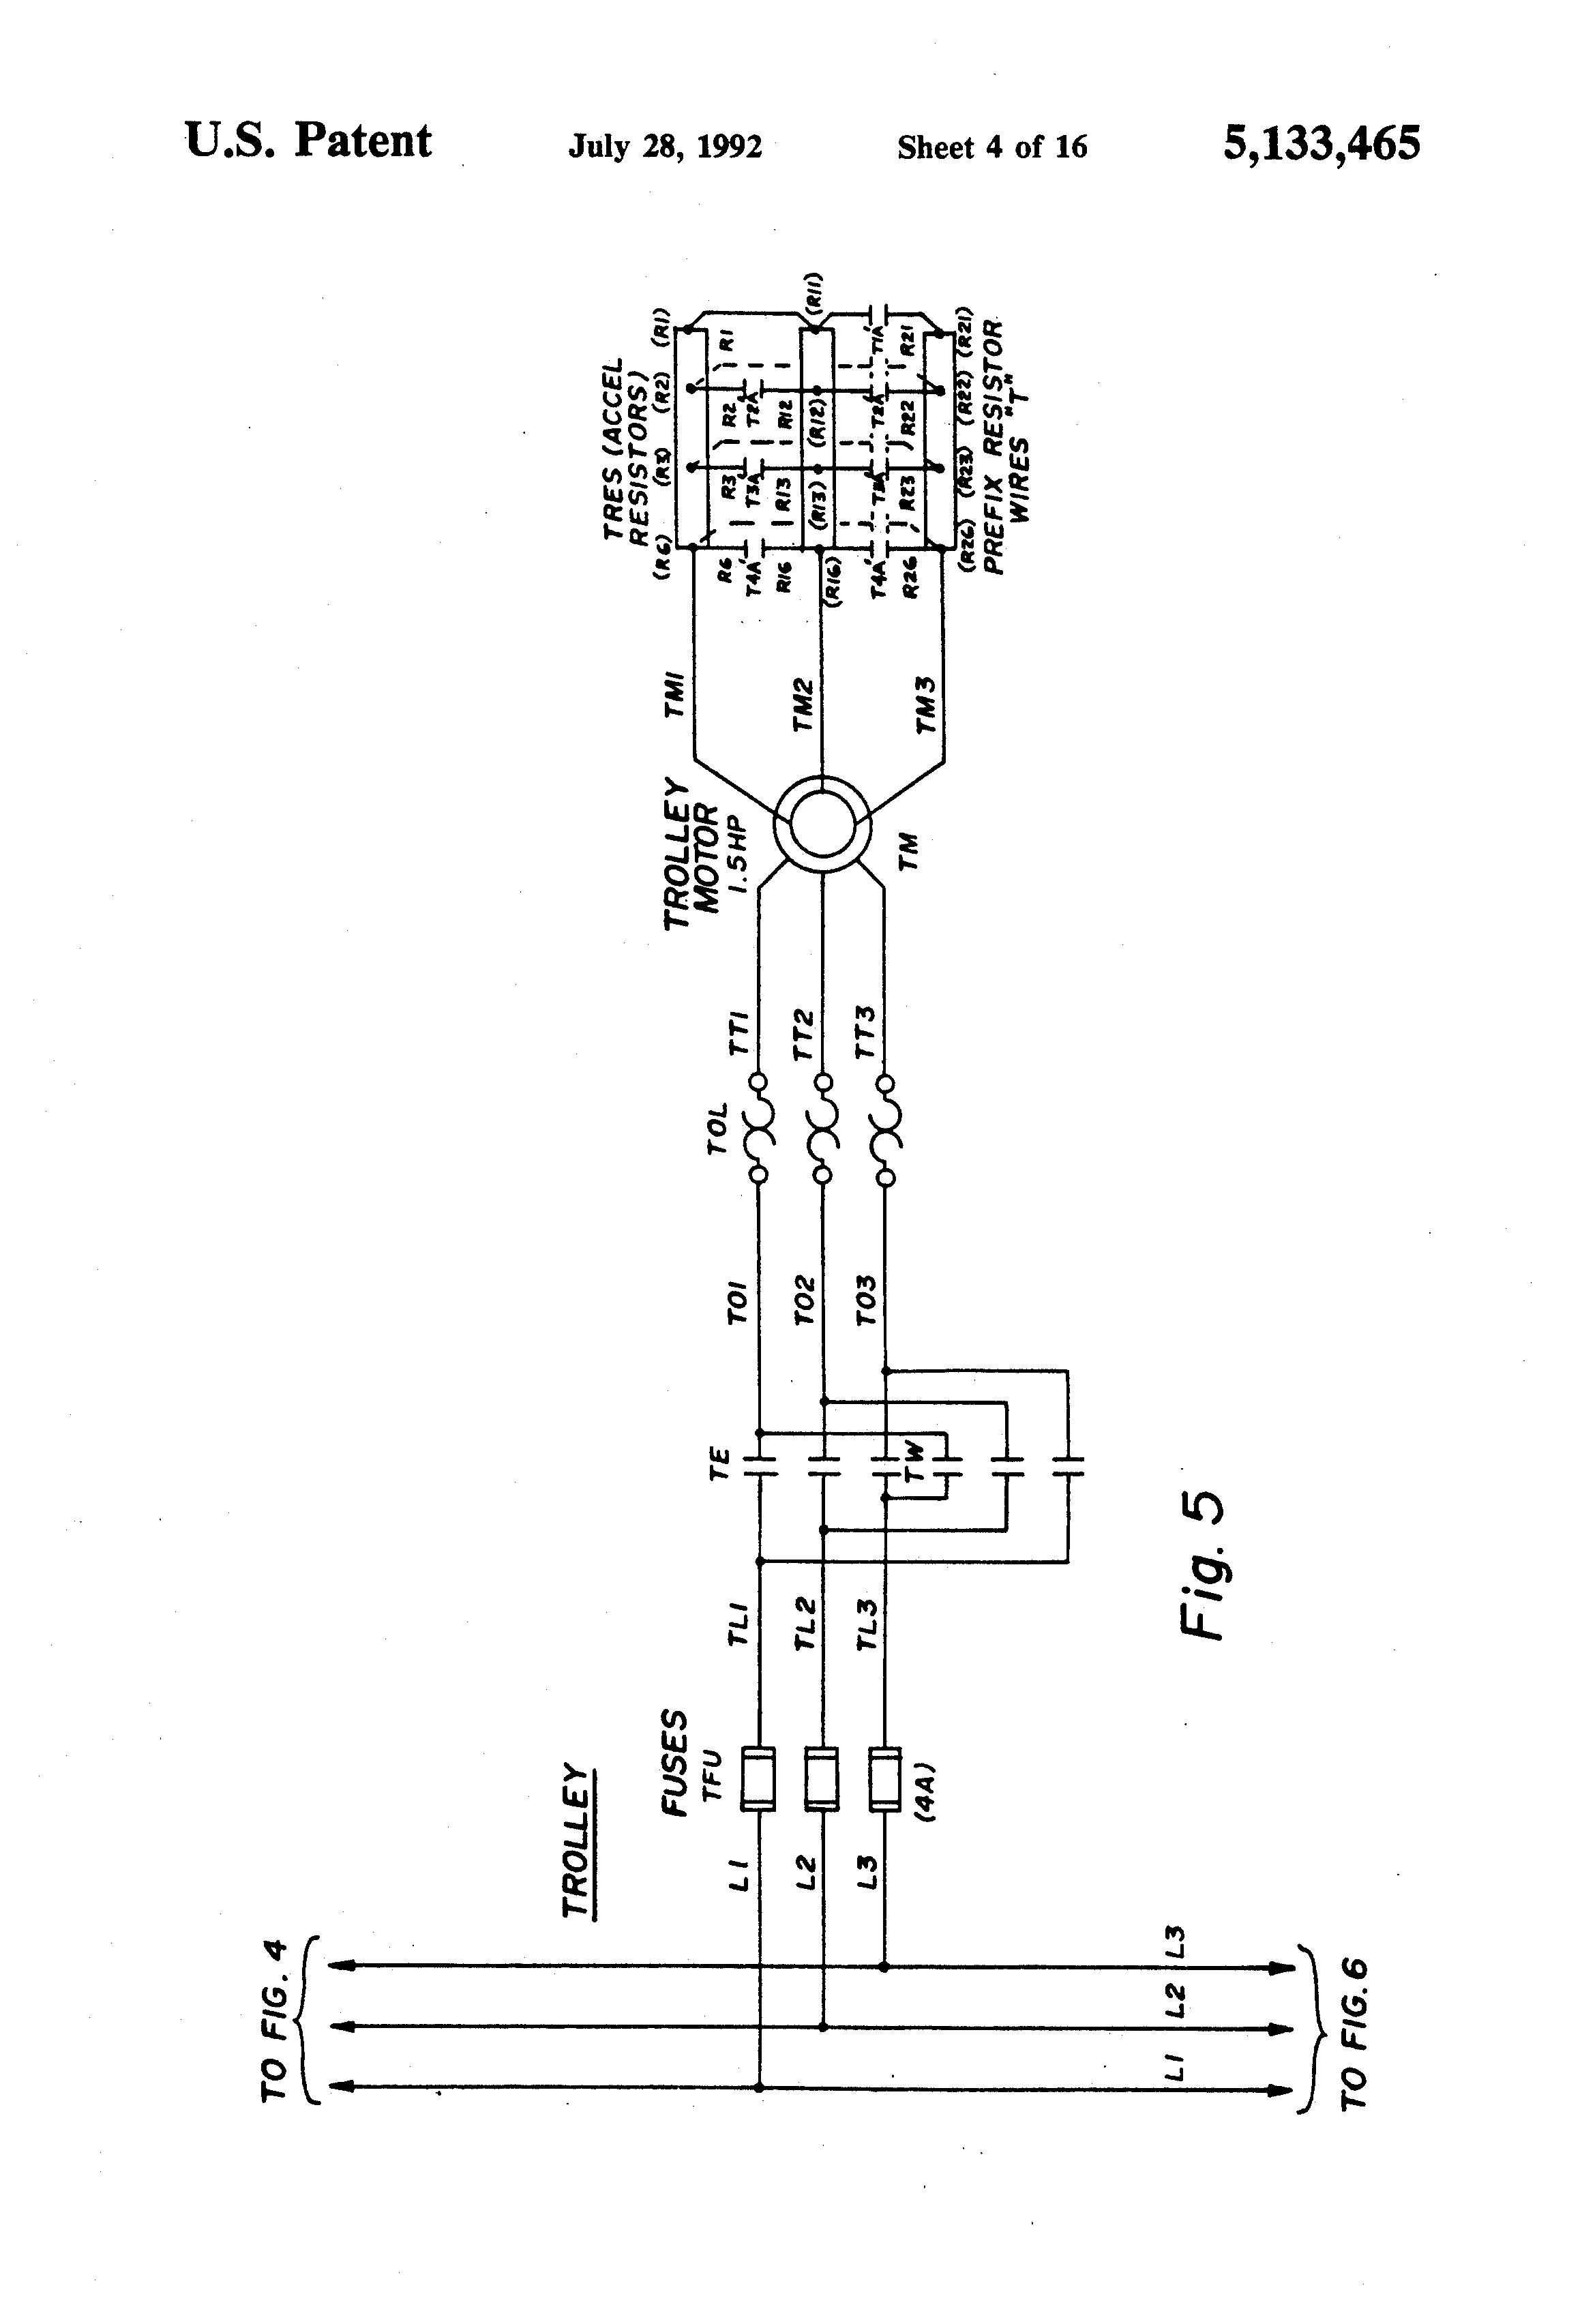 patent us bridge crane electric motor control system patent drawing